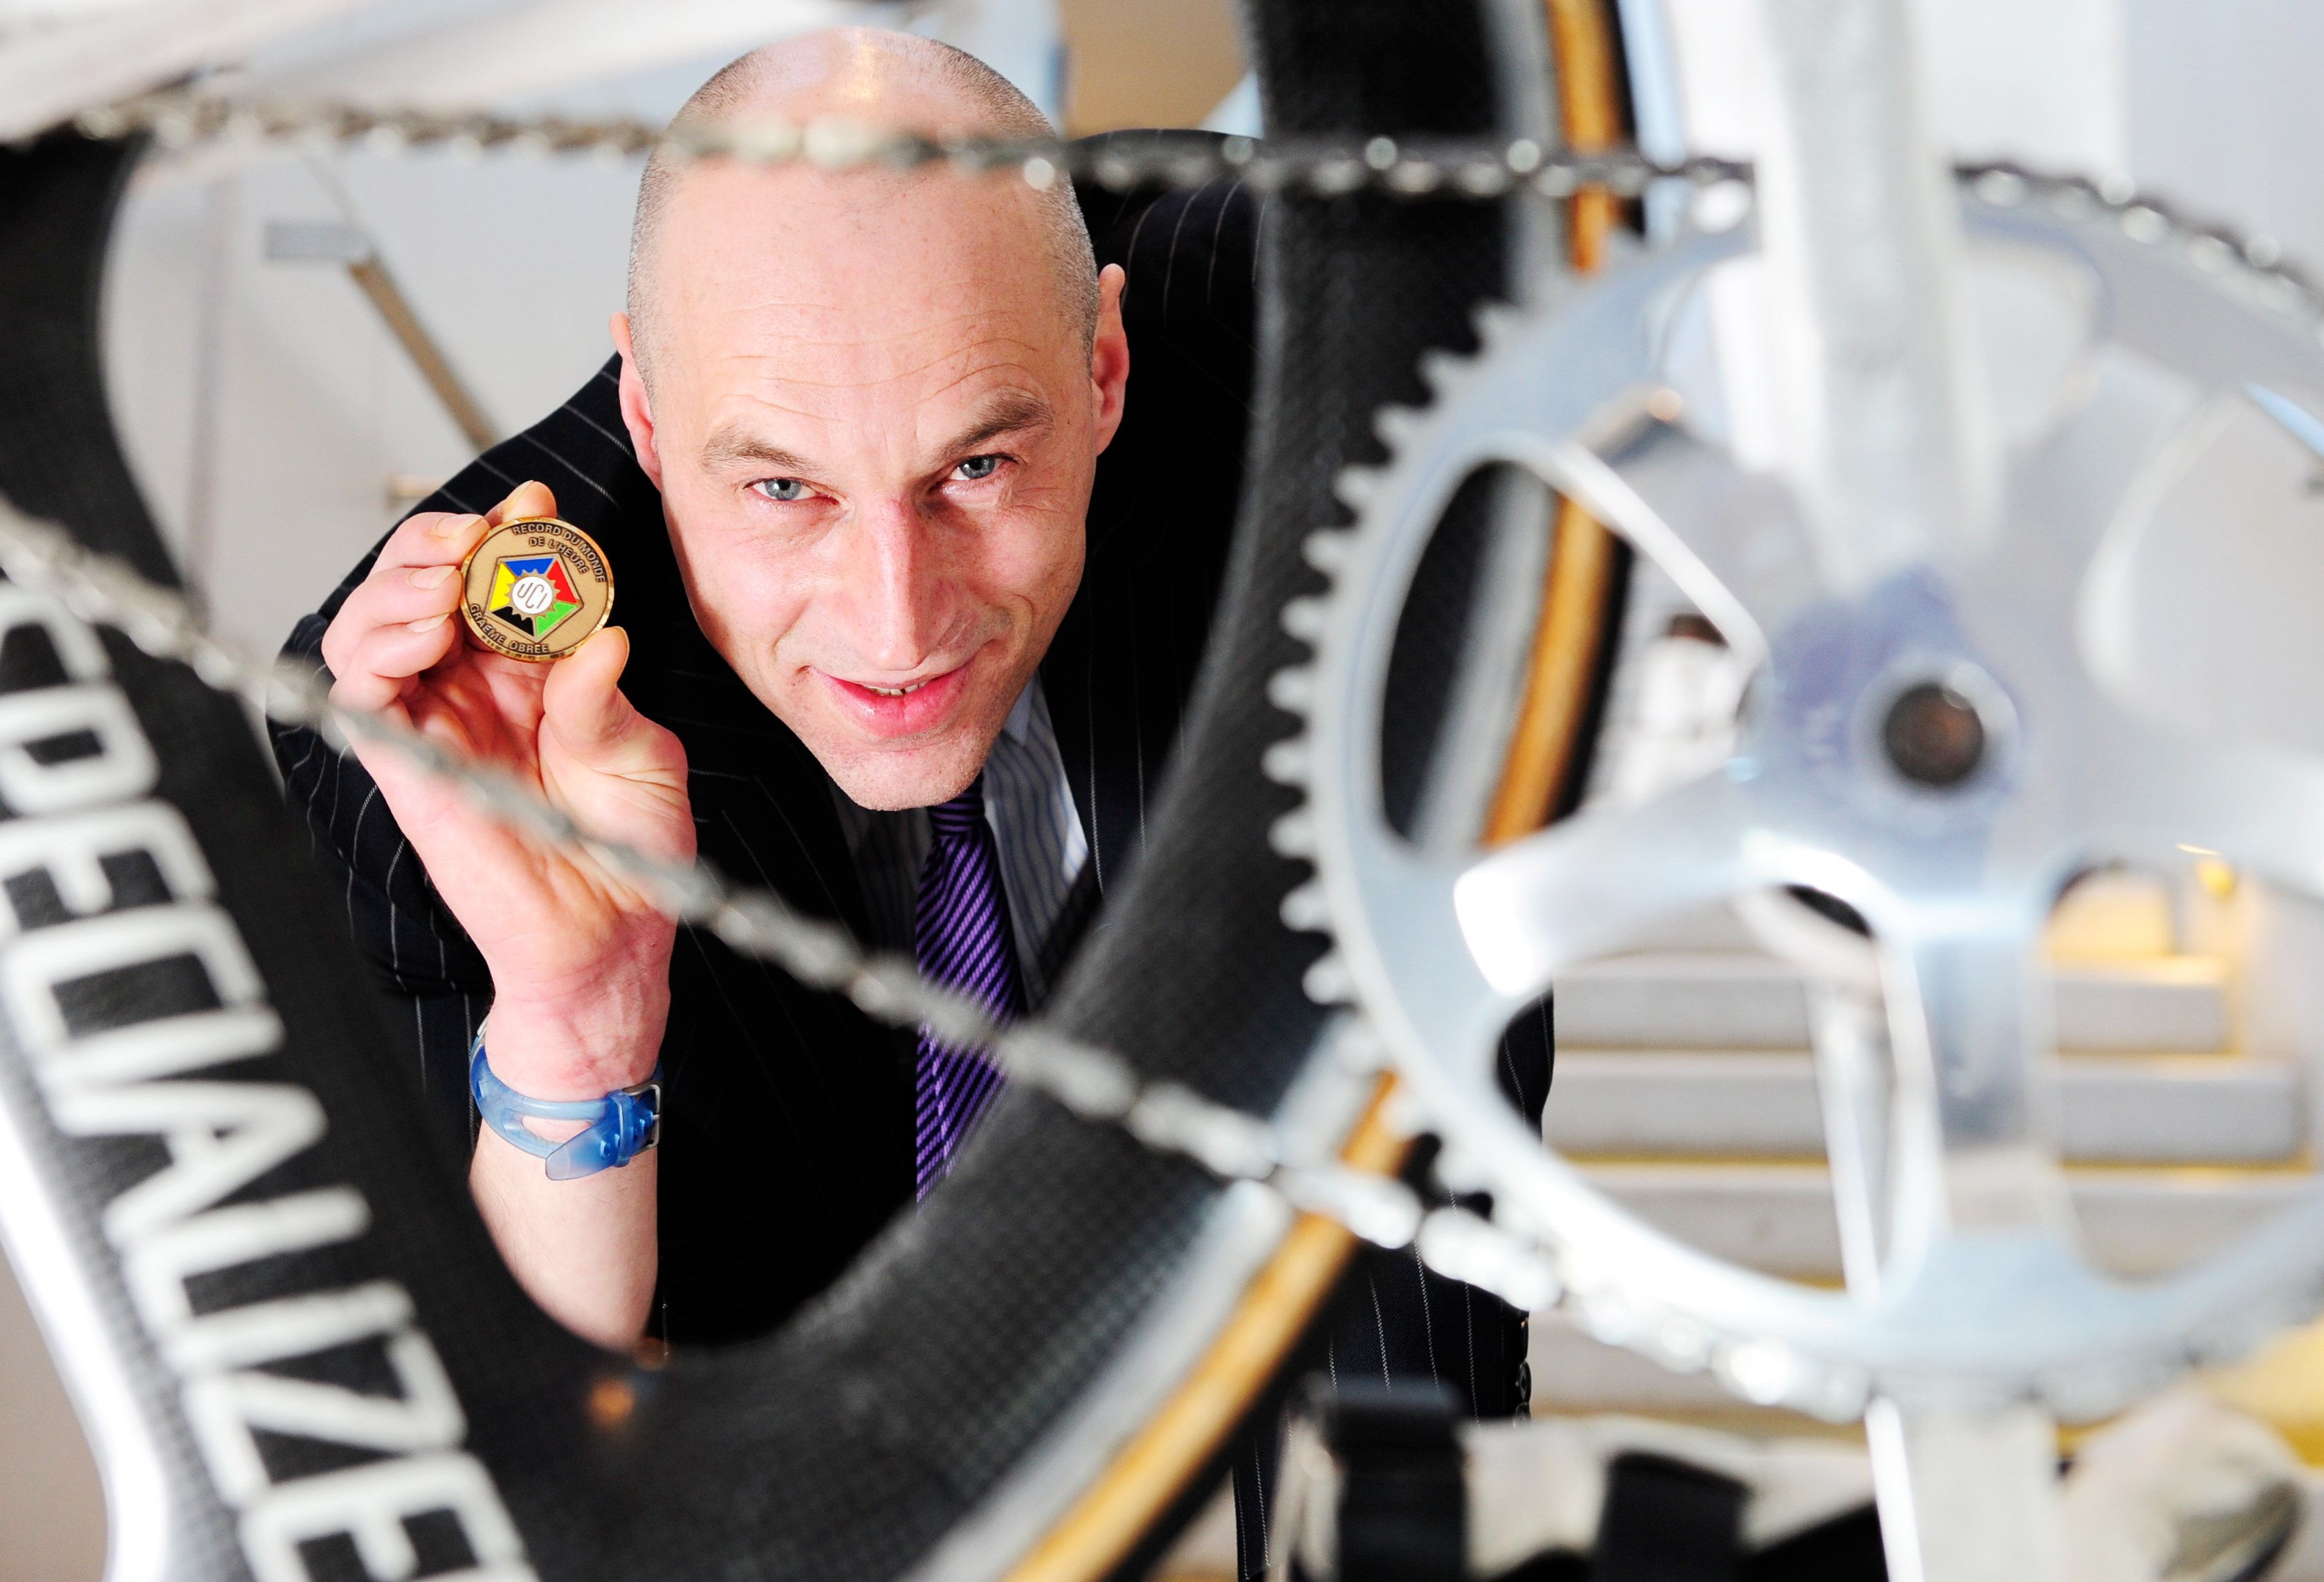 Graeme Obree with his 1993 World Hour Record medal, awarded by the Union Cycliste Internationale.